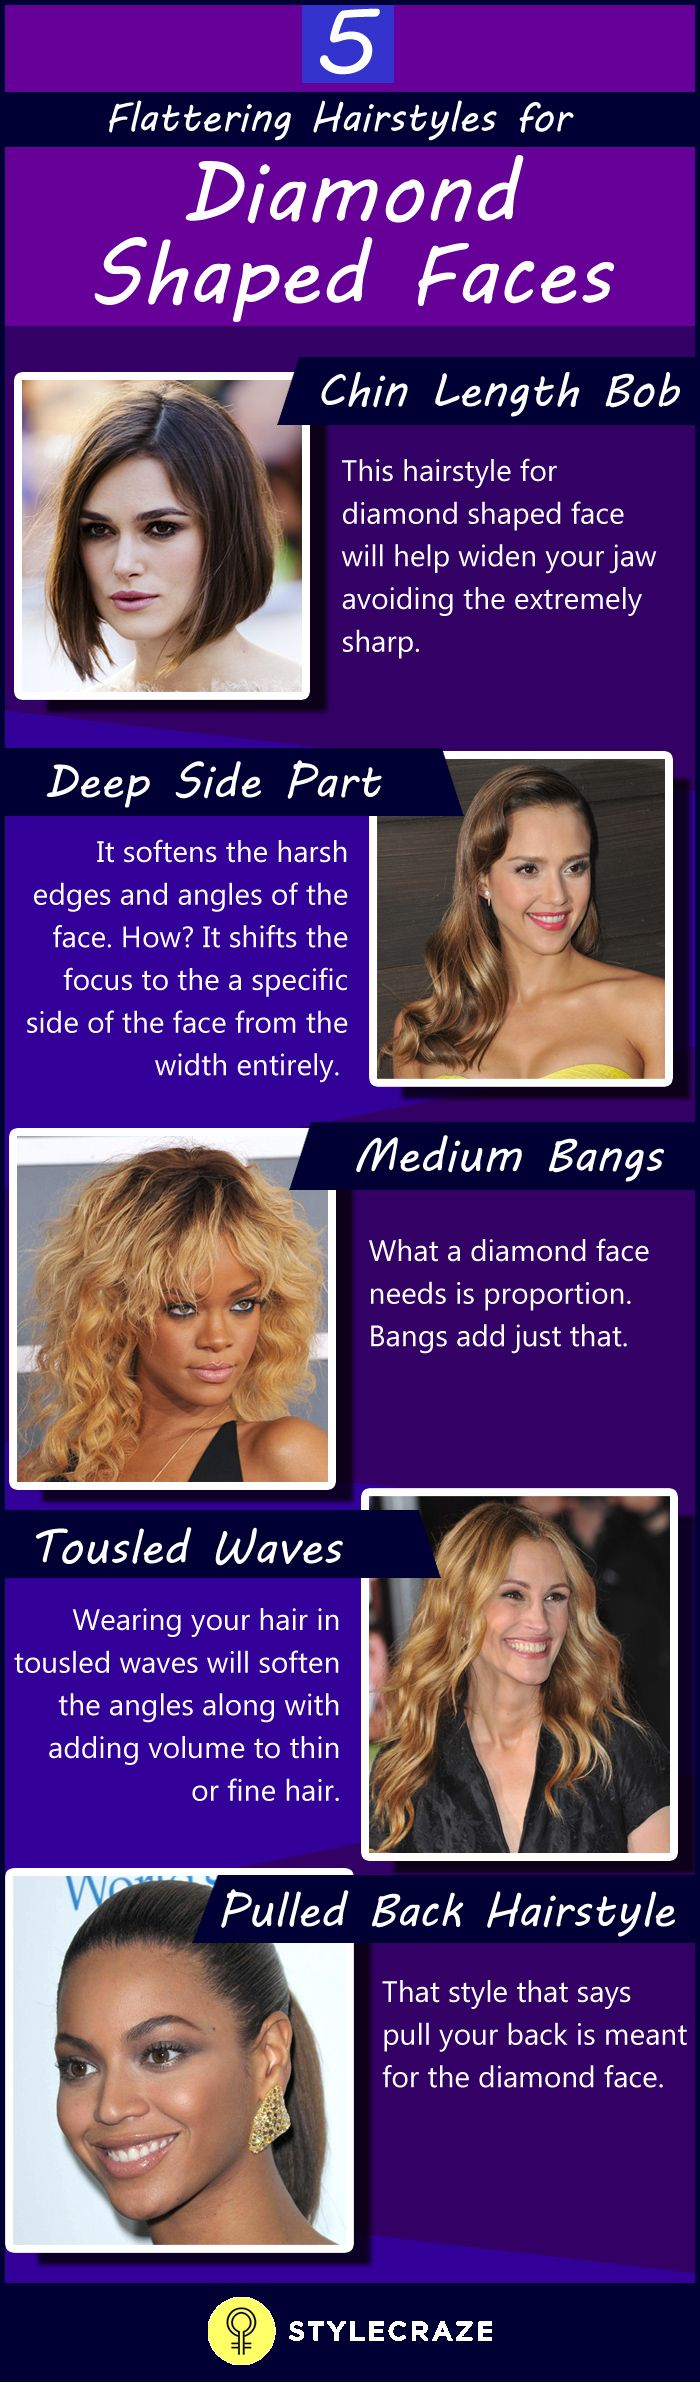 30 stunning hairstyles for diamond faces | truely beautiful